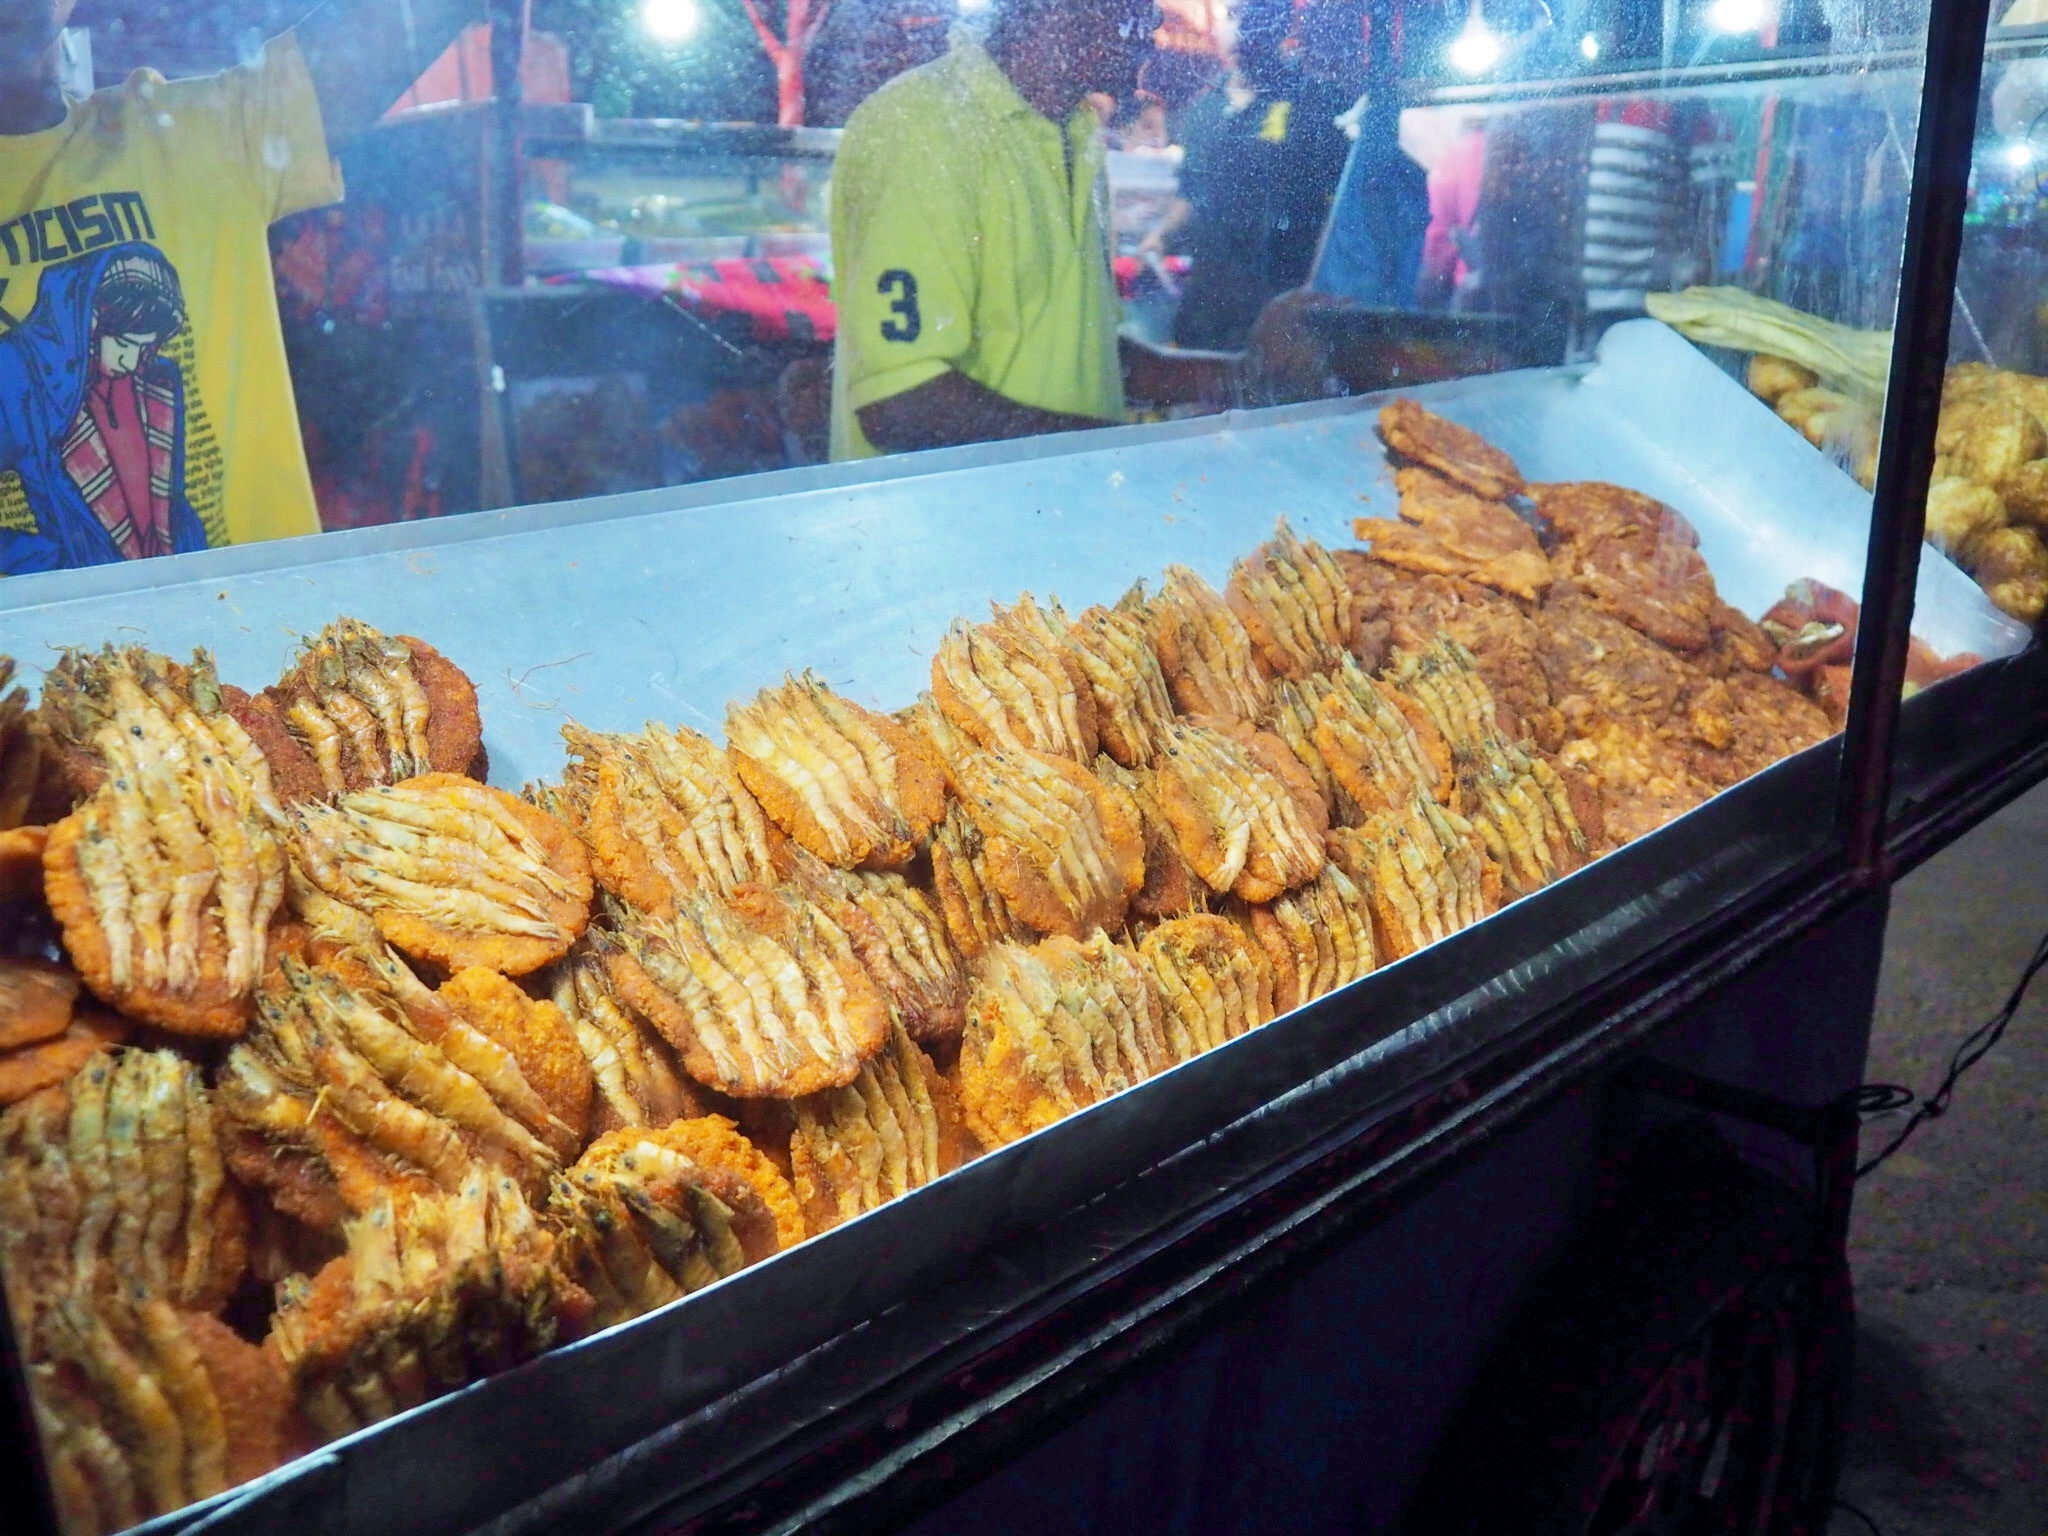 Isso wade (prawns on top of spicy split pea patties) at Galle Face Green in Sri Lanka